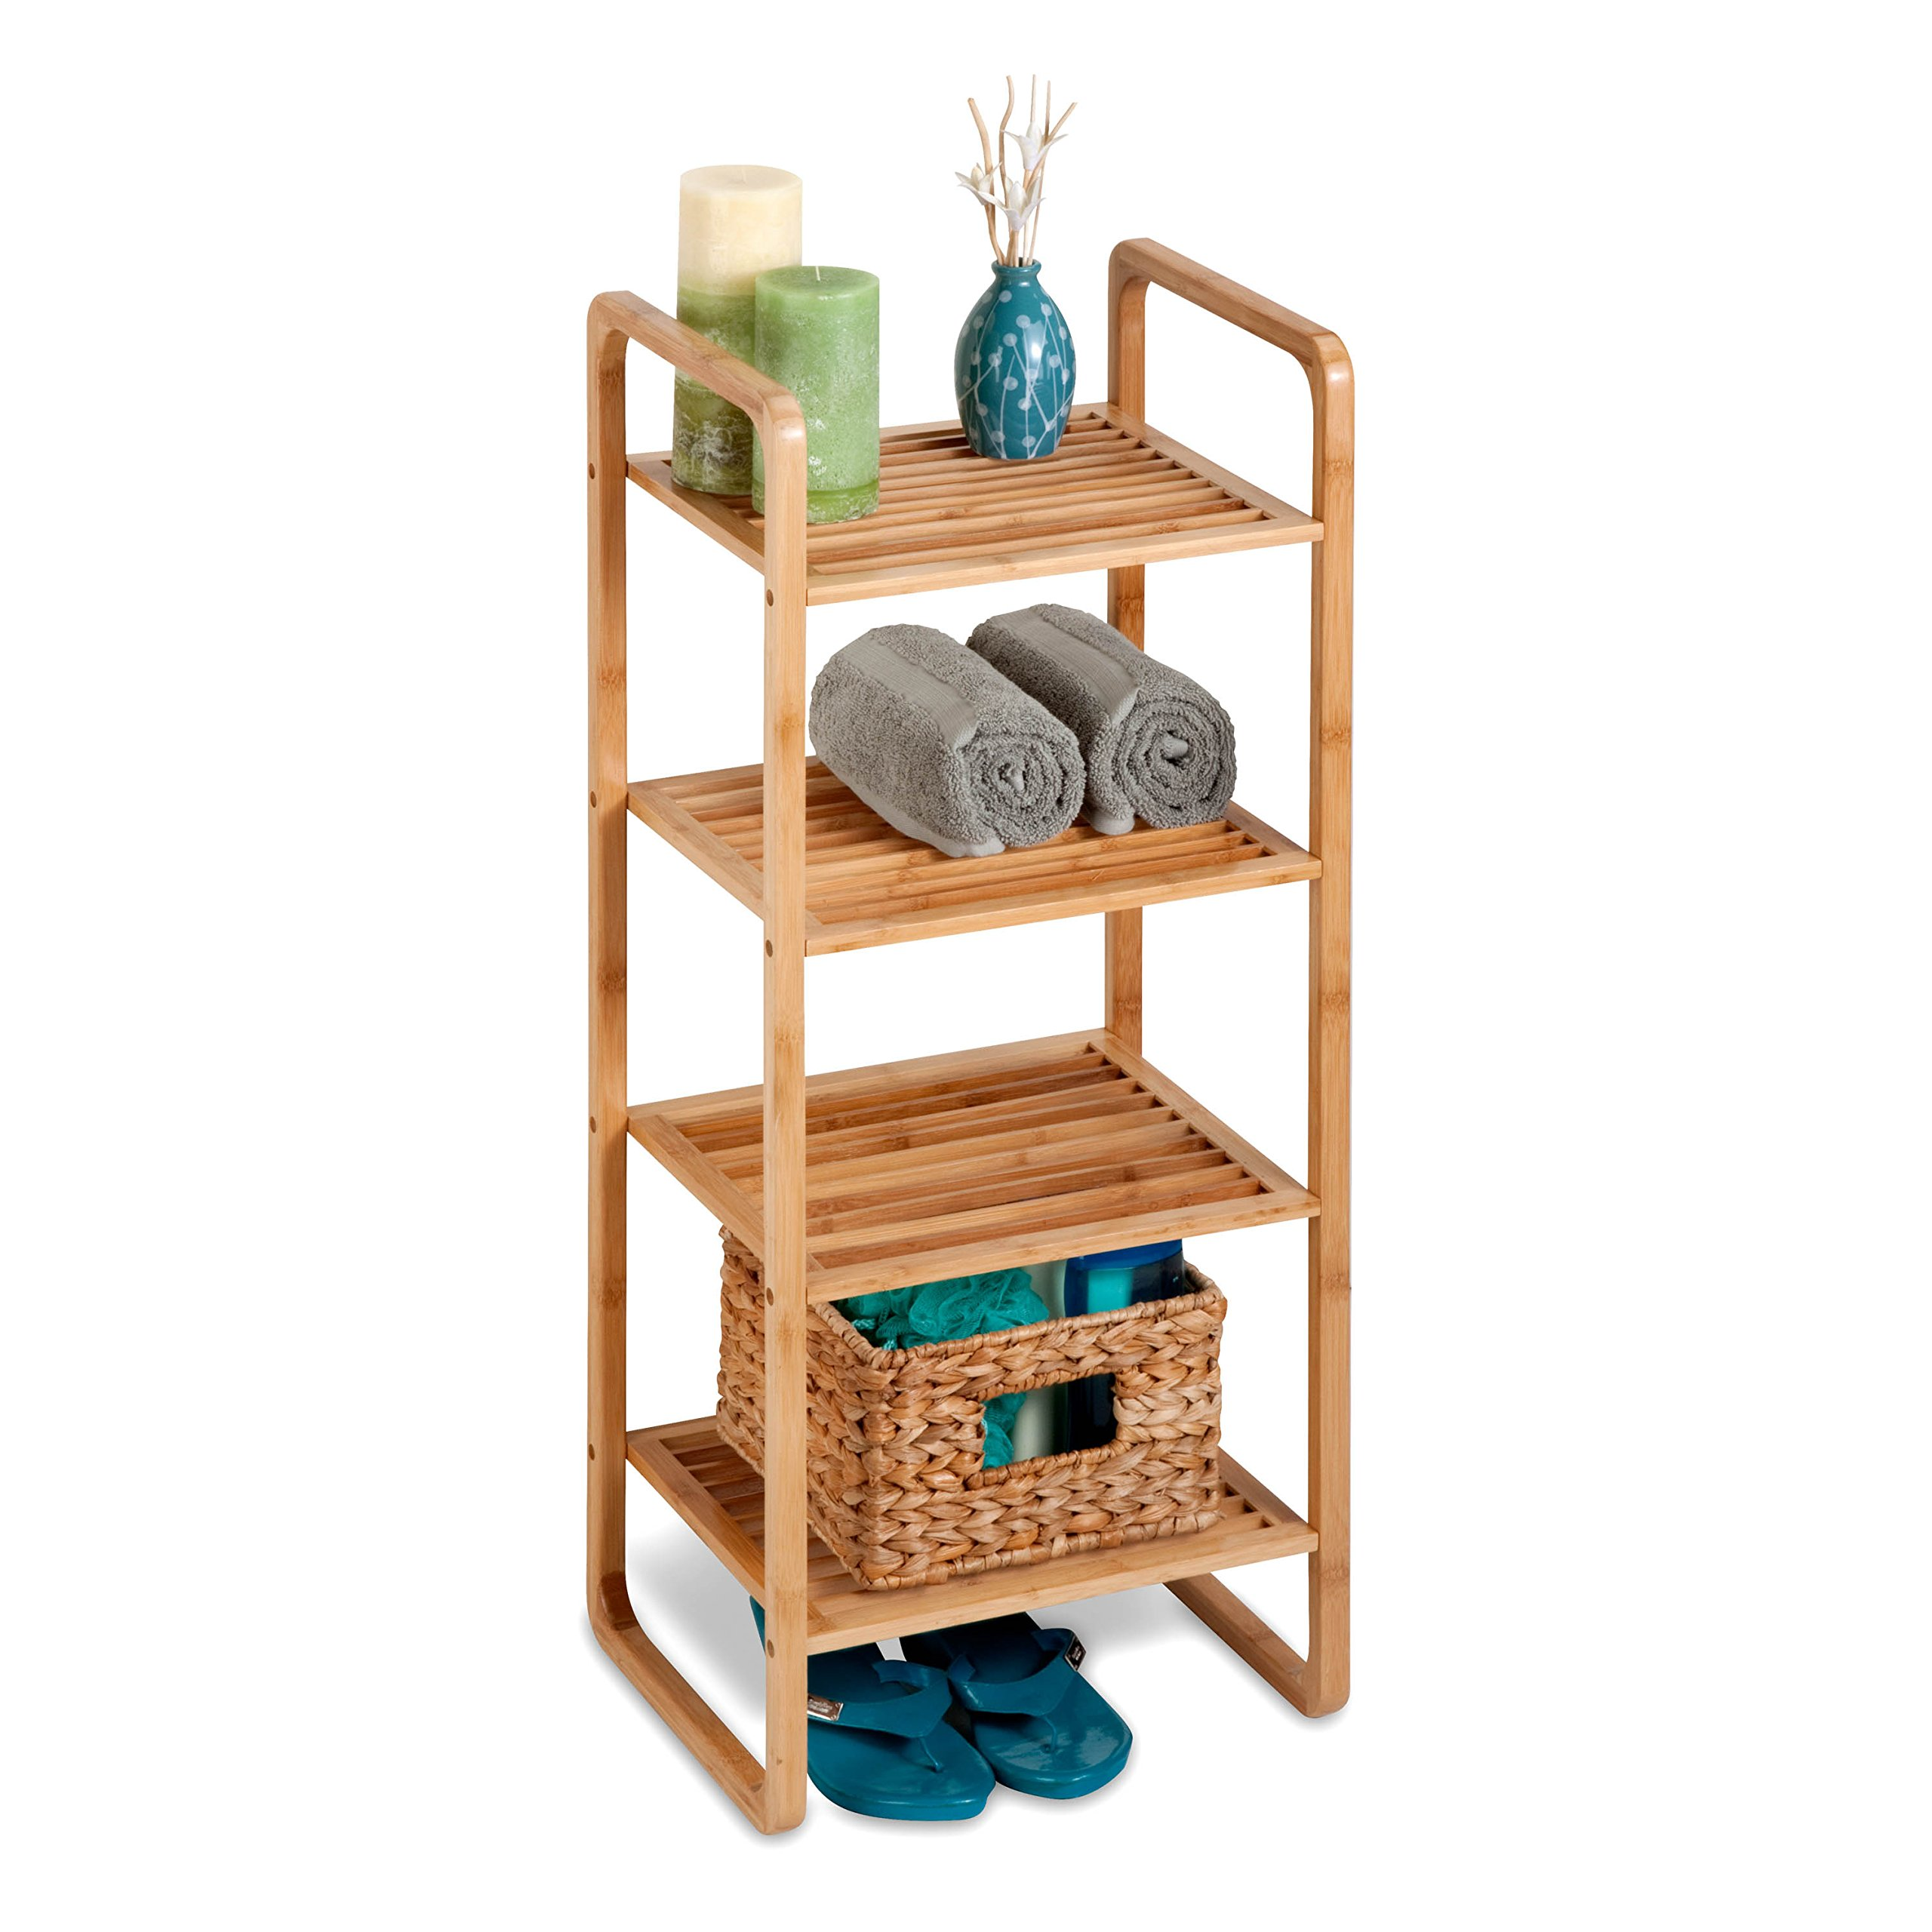 Honey-Can-Do SHF-02099 4-Tier Natural Bamboo Accessory Storage Shelf, 14 by 11 by 36-Inch by Honey-Can-Do (Image #2)